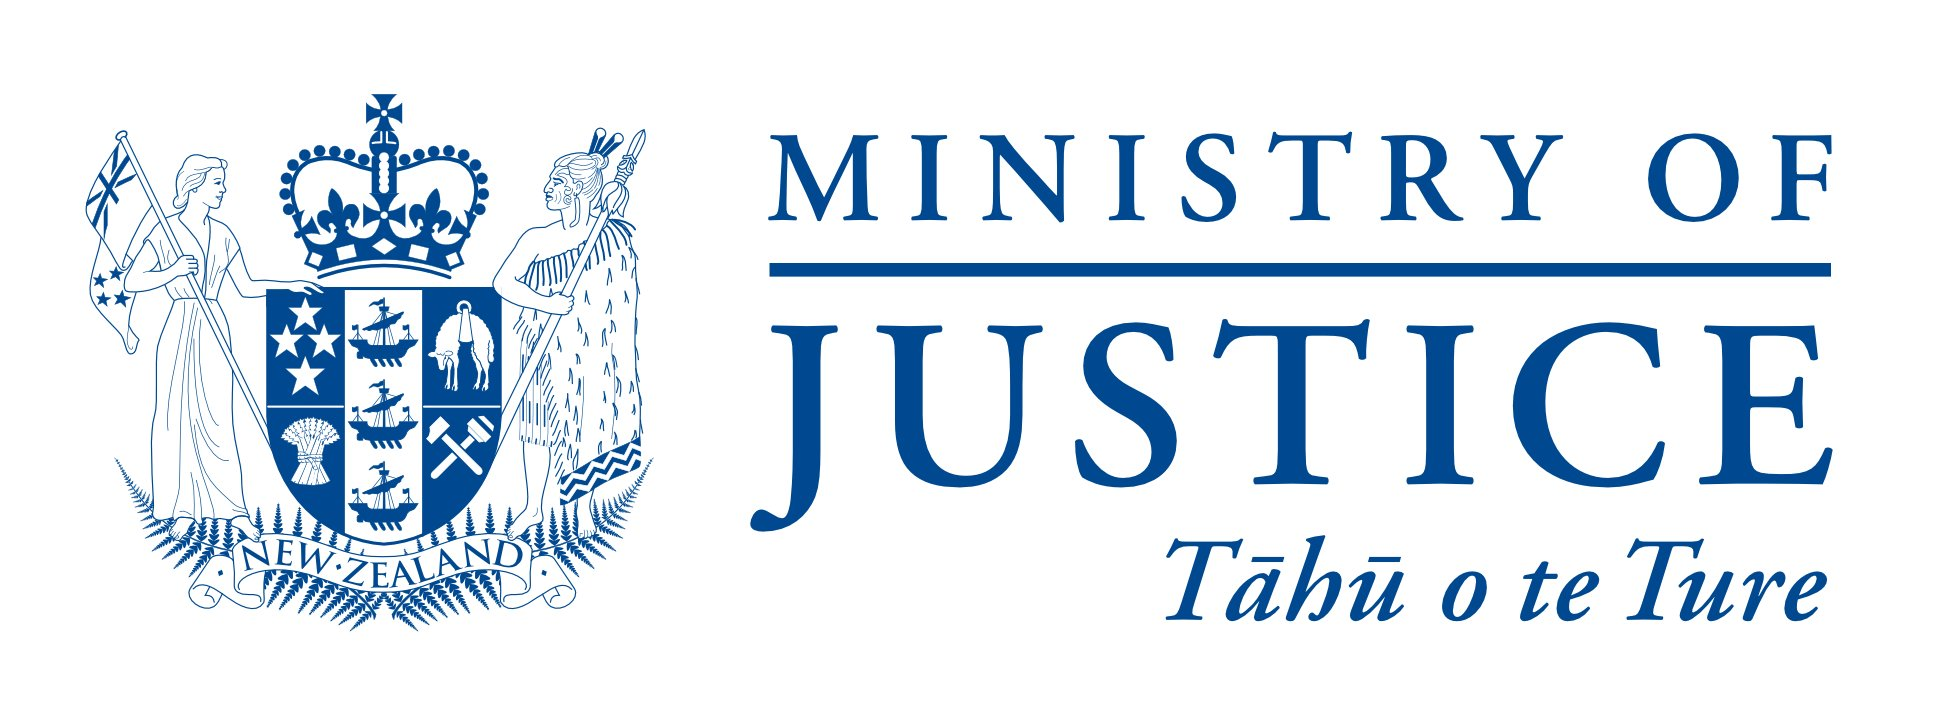 Ministry-of-Justice-blue-onwhite1.jpg